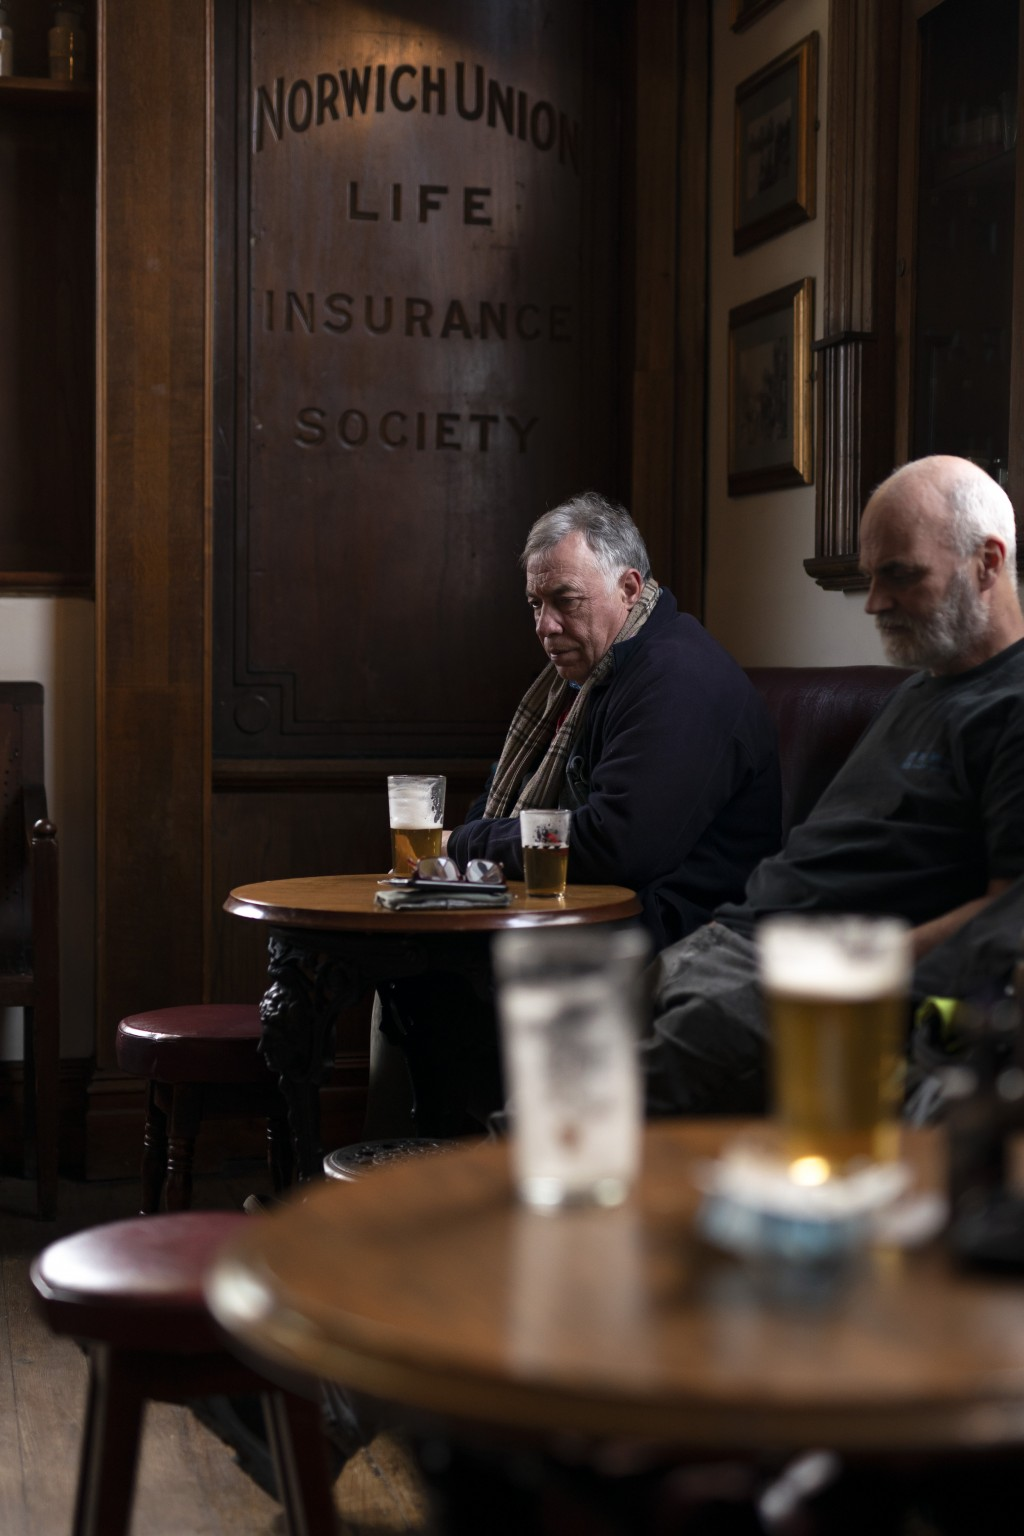 Men drink at the Dispensary pub in Liverpool, England, Monday Oct 12, 2020. As the first area in England slapped with strict new restrictions to curb ...